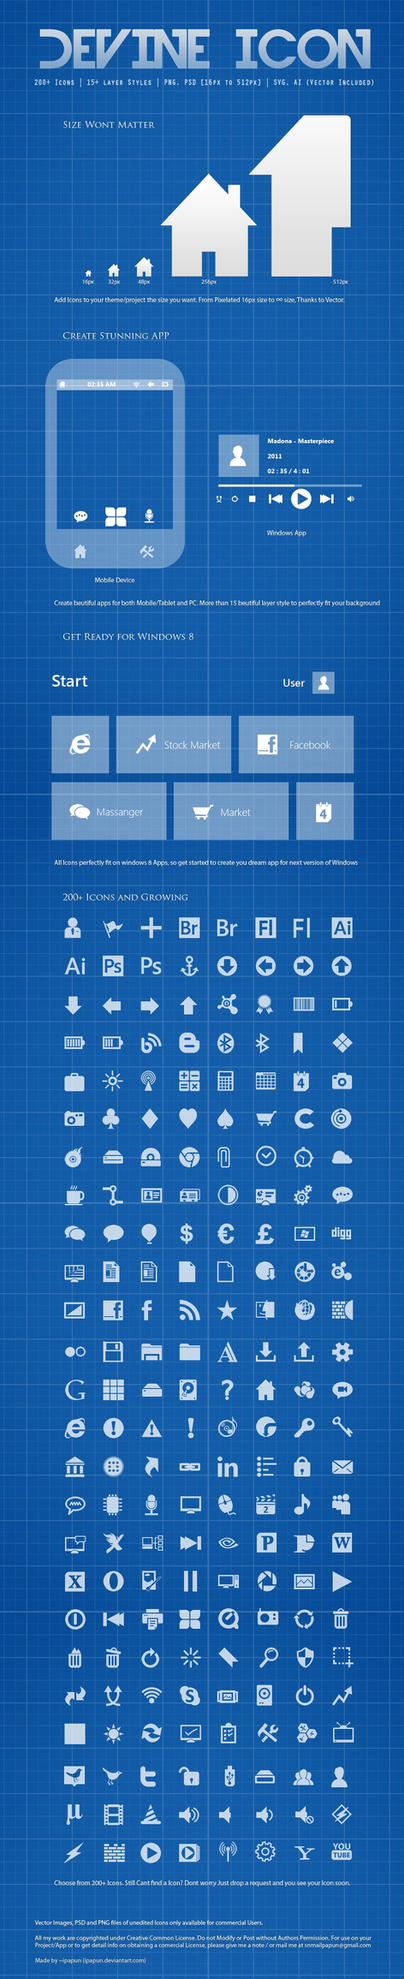 Devine Icons Updated by ipapun